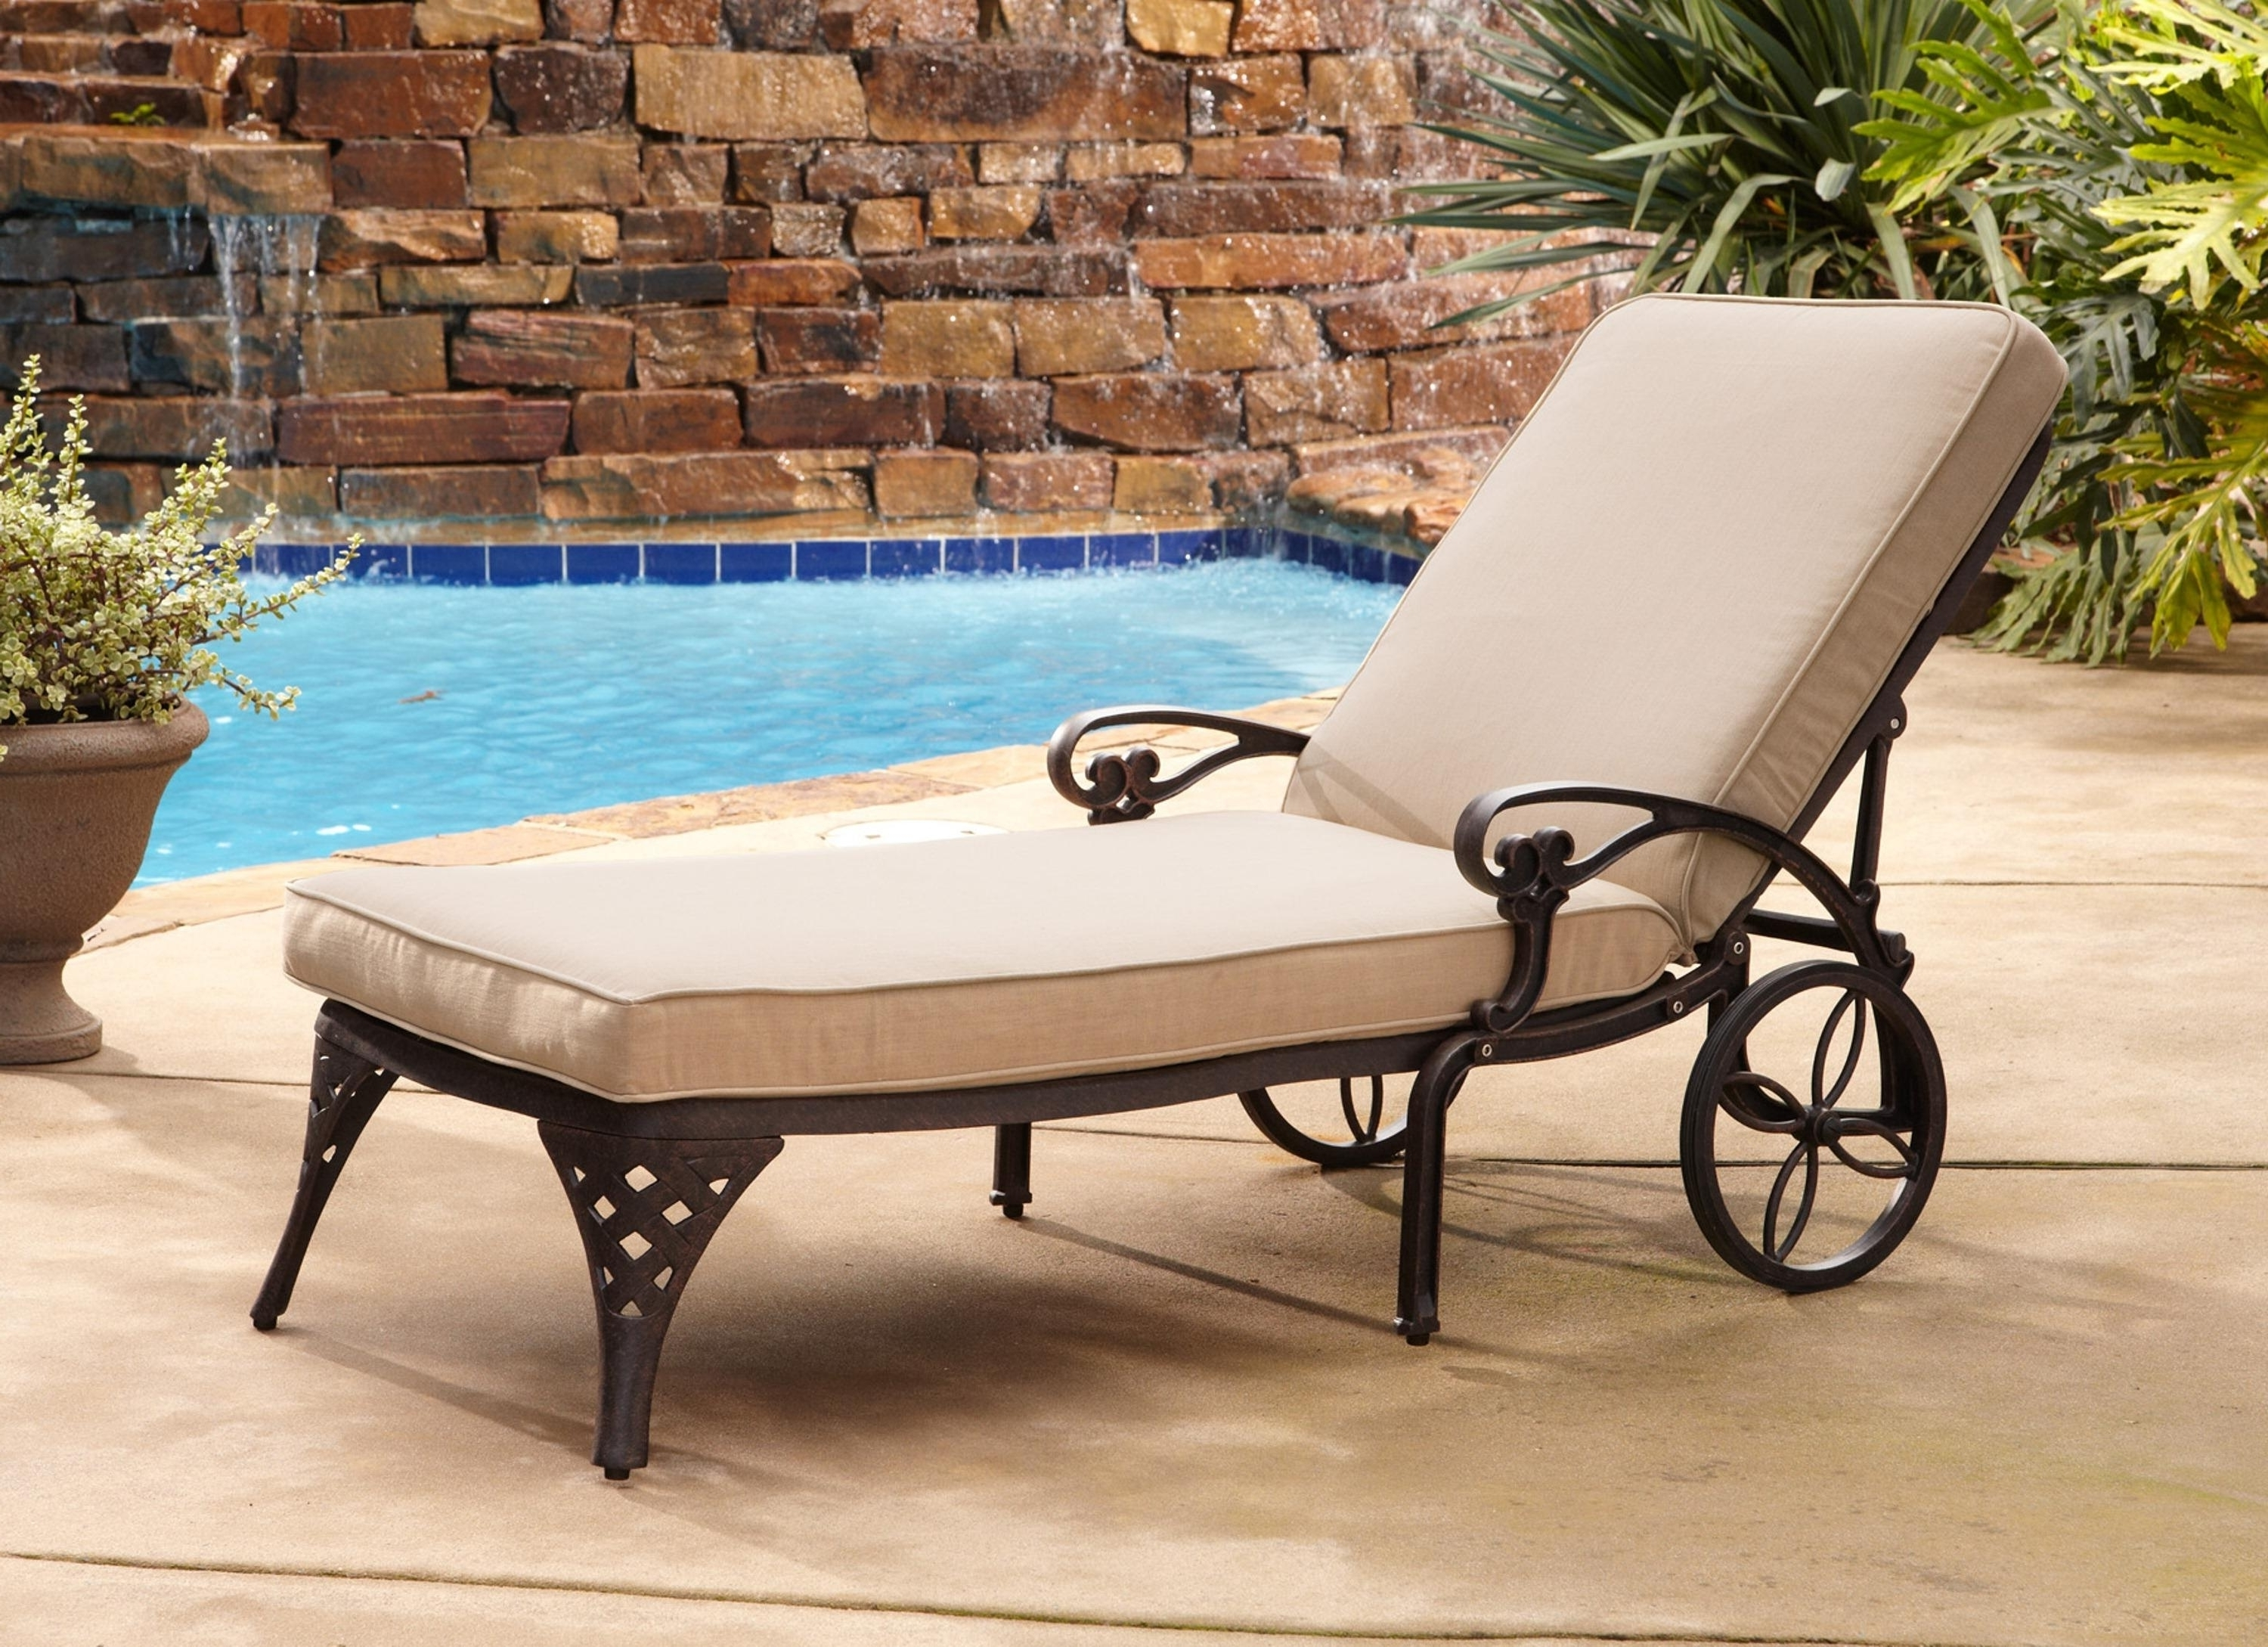 Outdoor Lounge Chairs With Cushions — Bistrodre Porch And With Most Recent Outdoor Cast Aluminum Chaise Lounge Chairs (View 11 of 15)